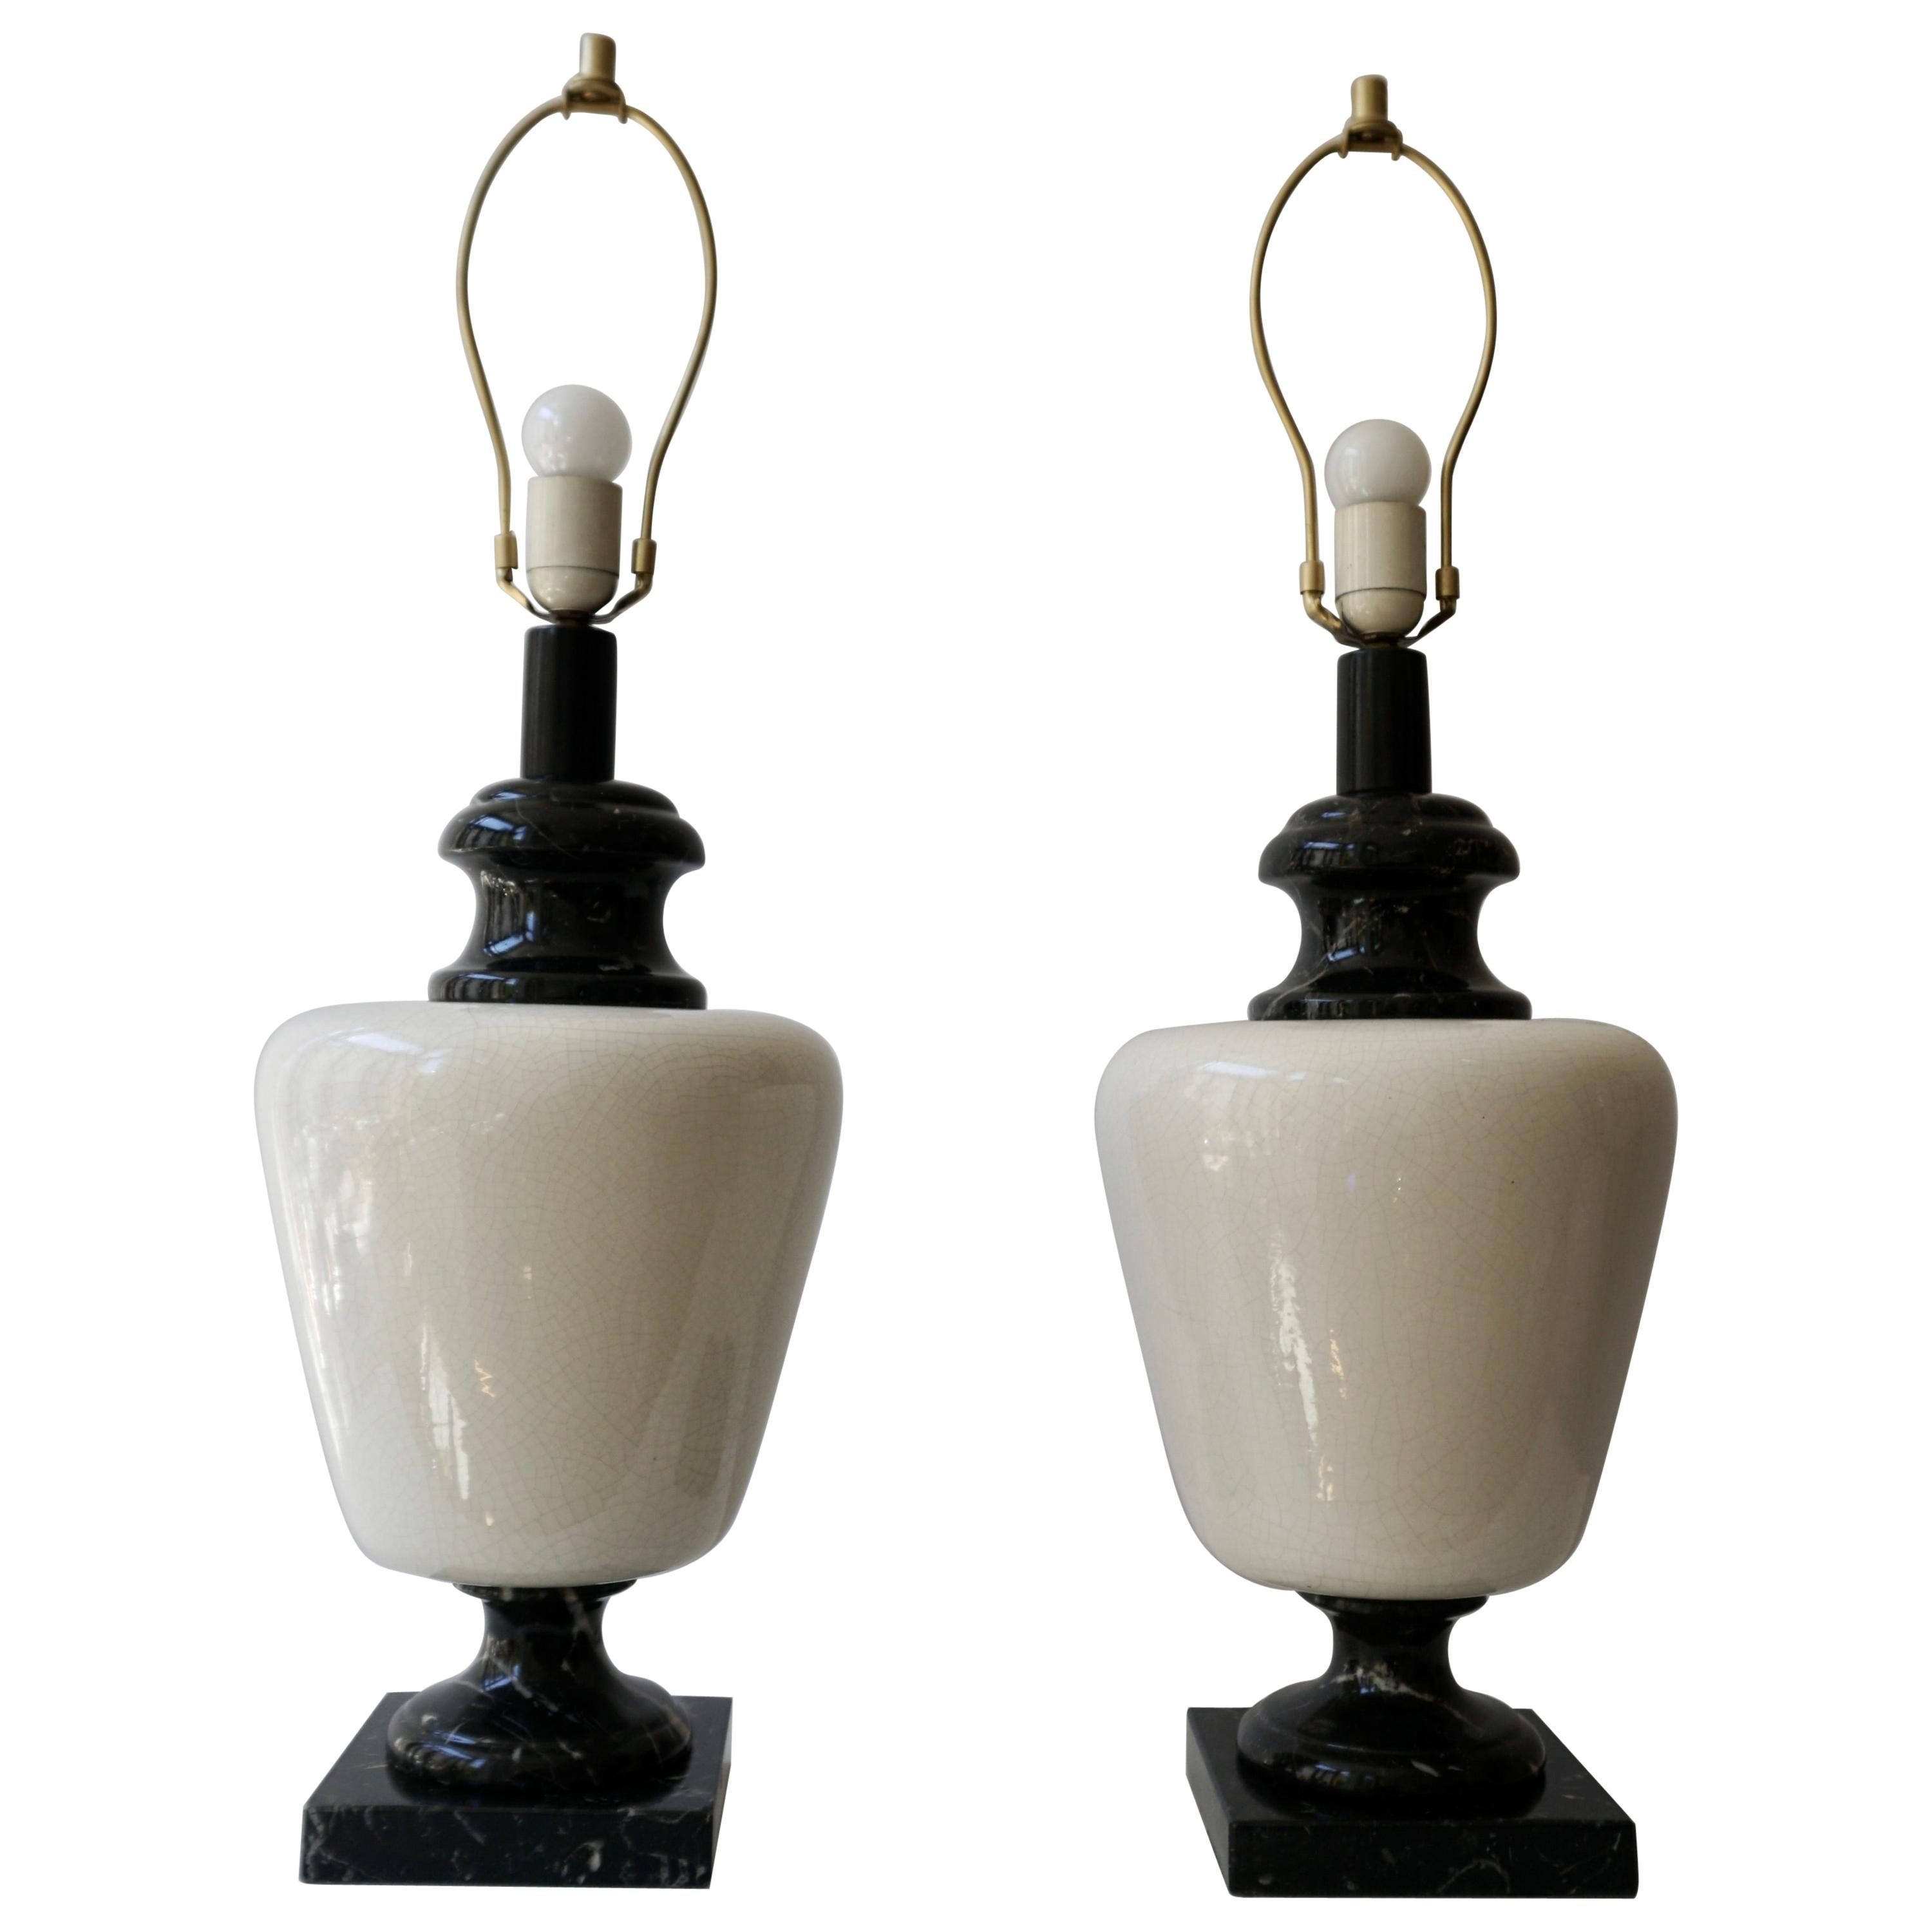 Pair of Hollywood Regency Black and White Marble Table Lamps